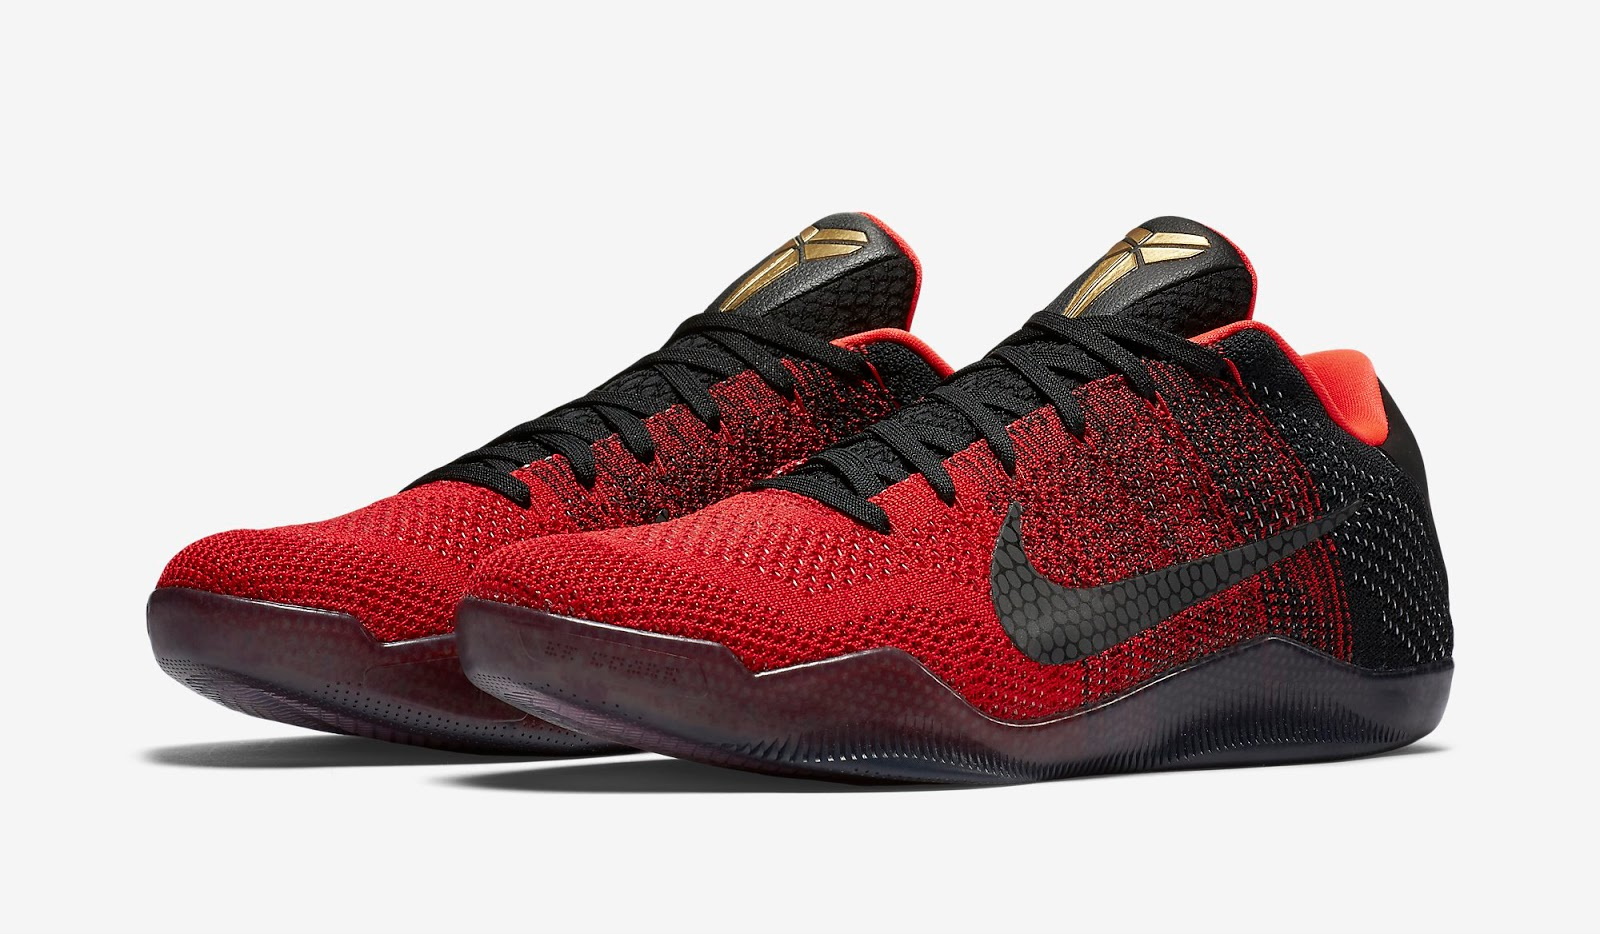 d9febd69e7f7 ... coupon code for nike kobe 11 elite low achilles heel university red  metallic gold black release